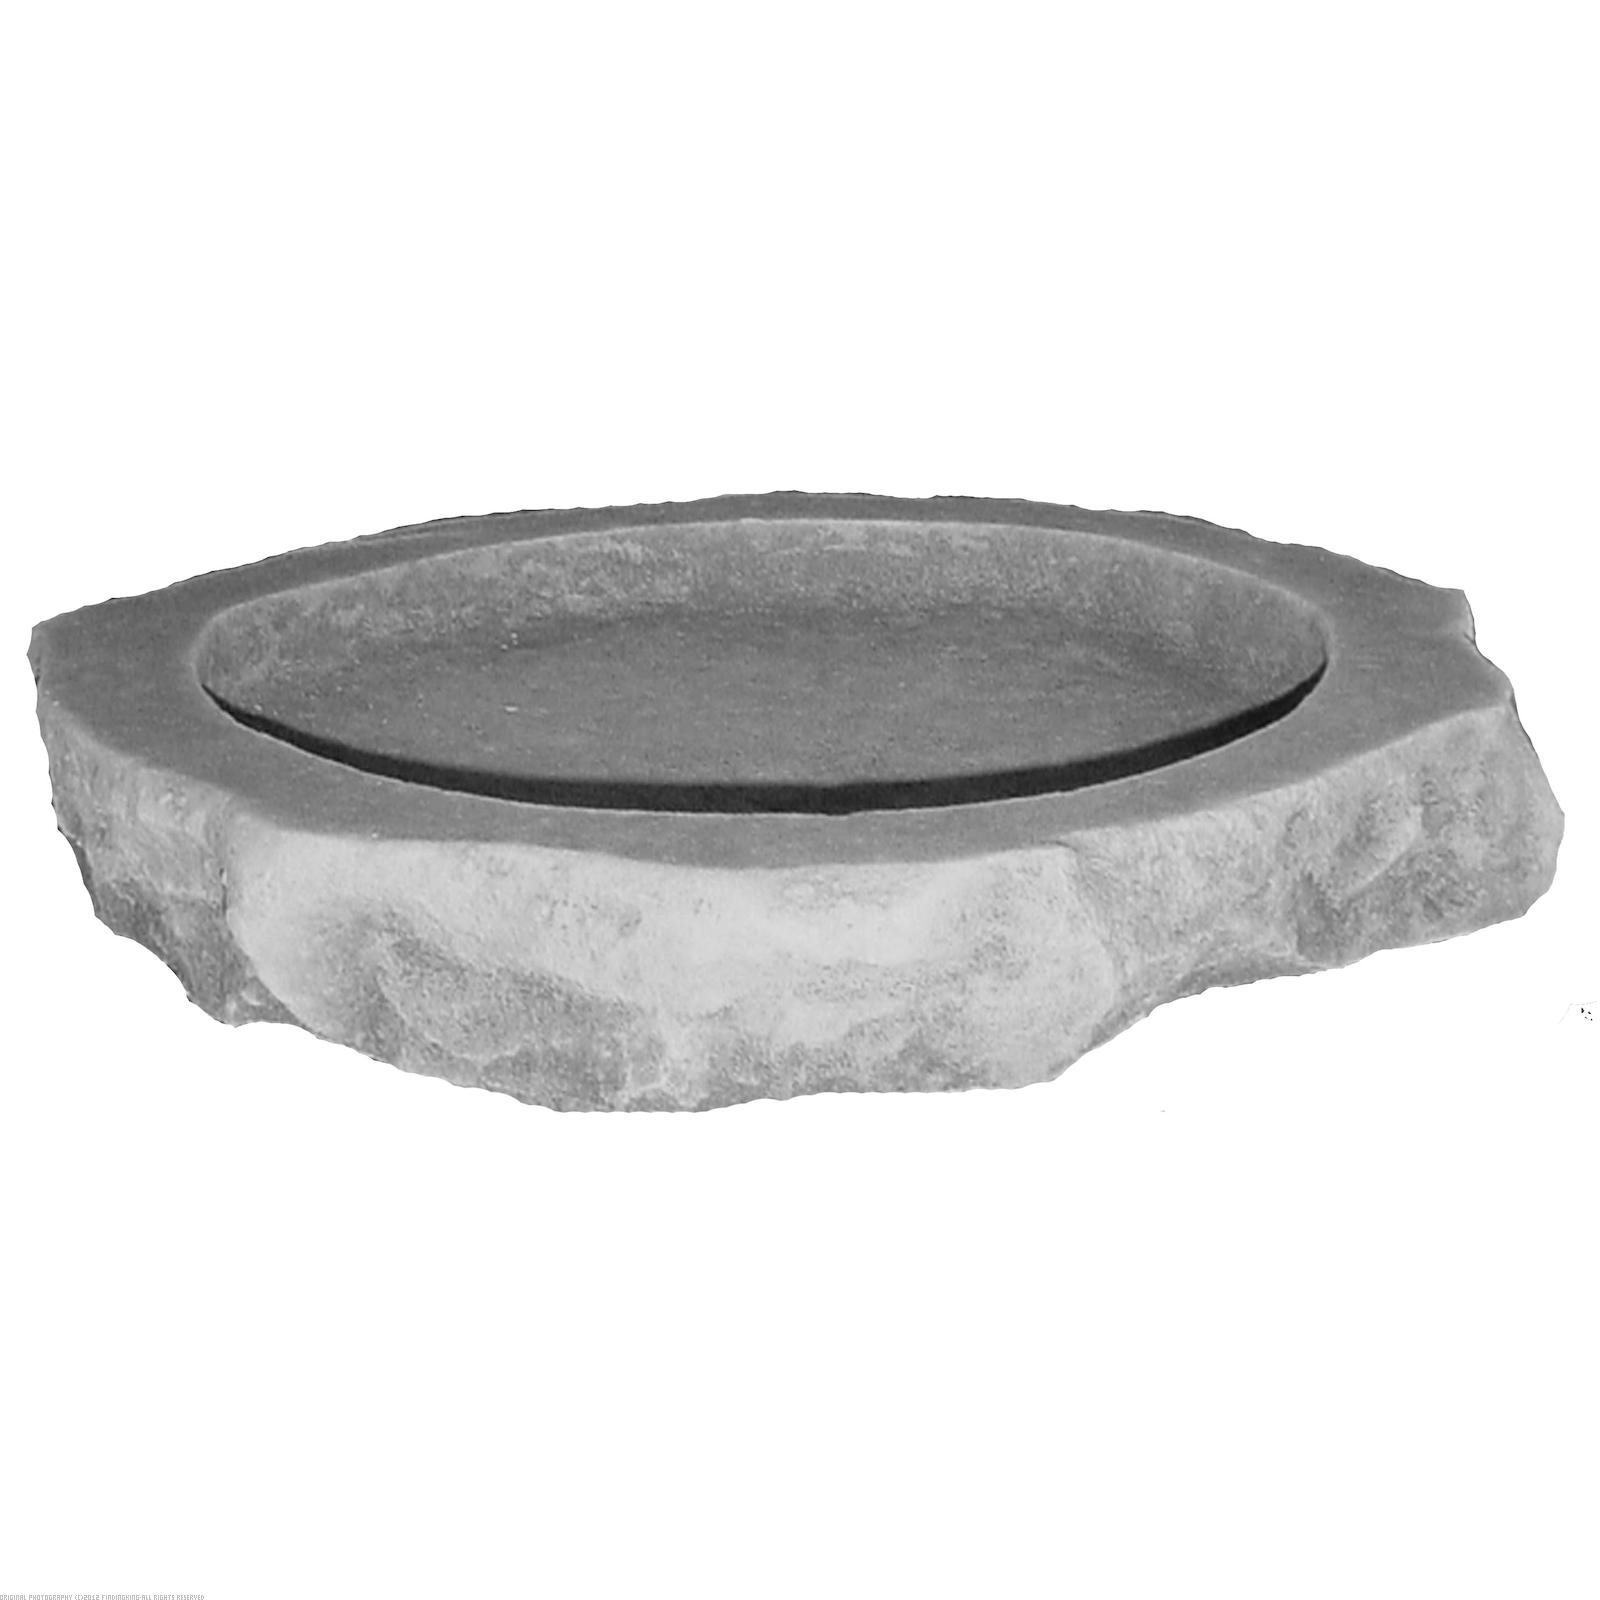 Kayberry 31001 Birdbath Top by Kay Berry